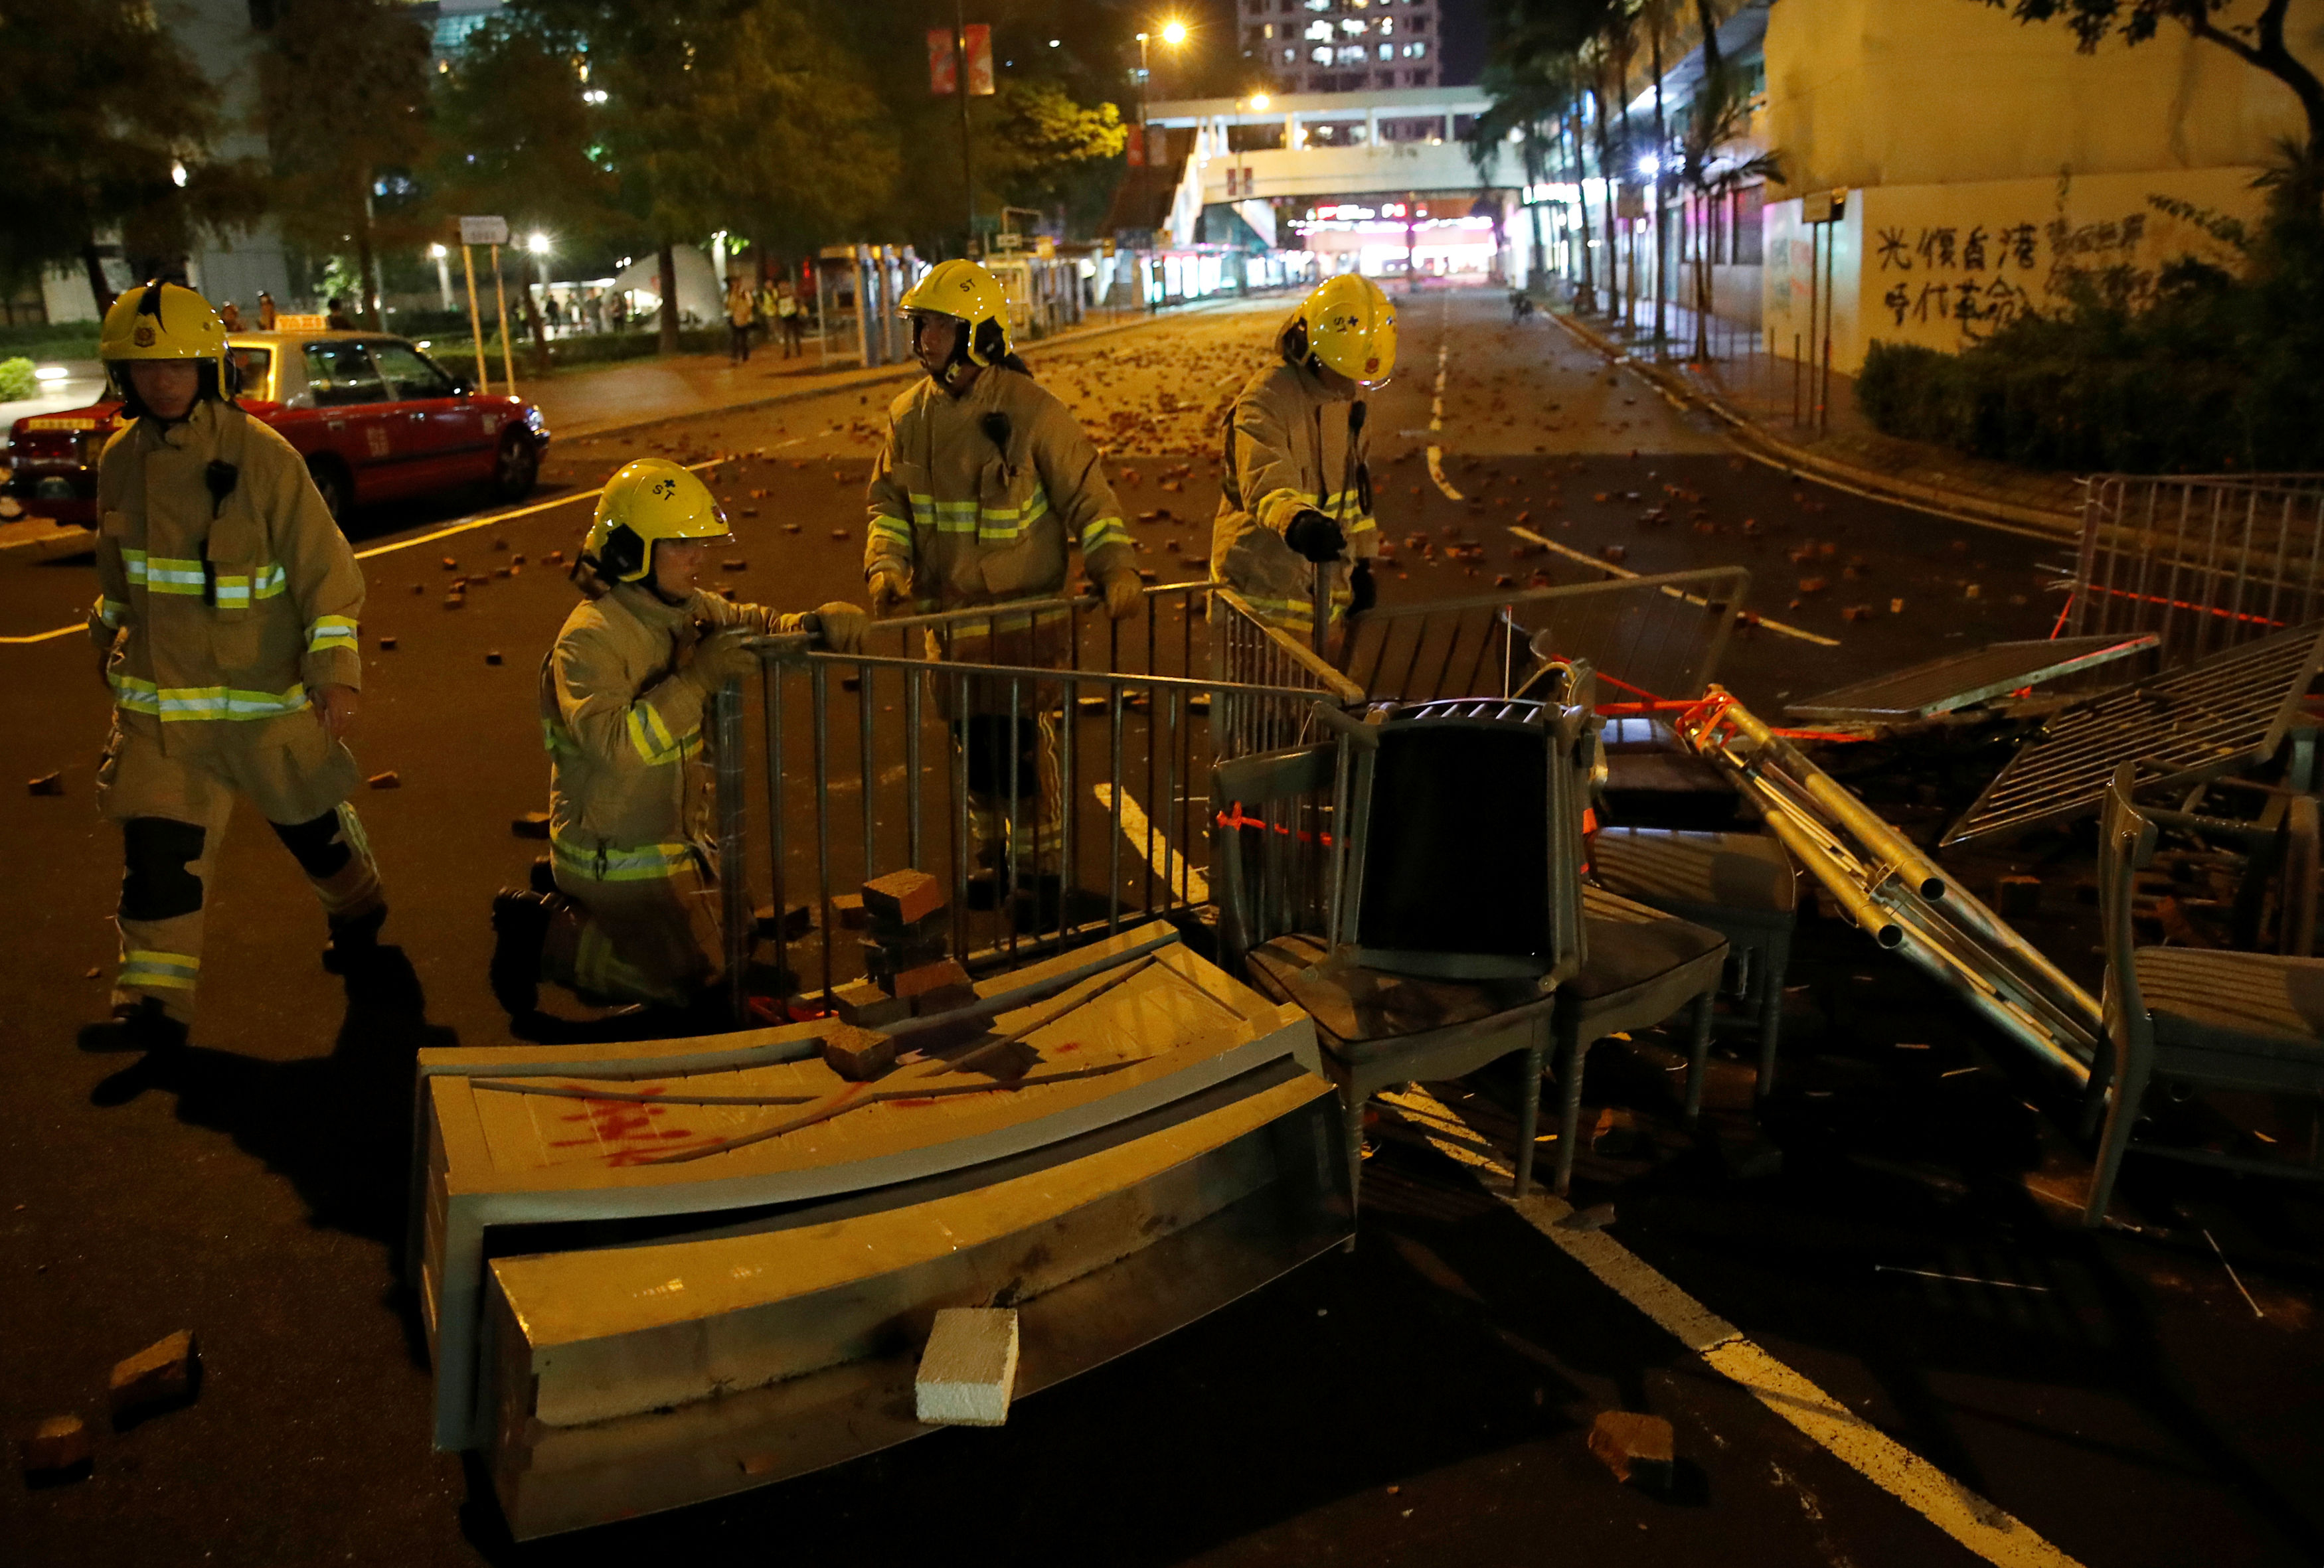 Homemade bomb appears for first time in Hong Kong violence